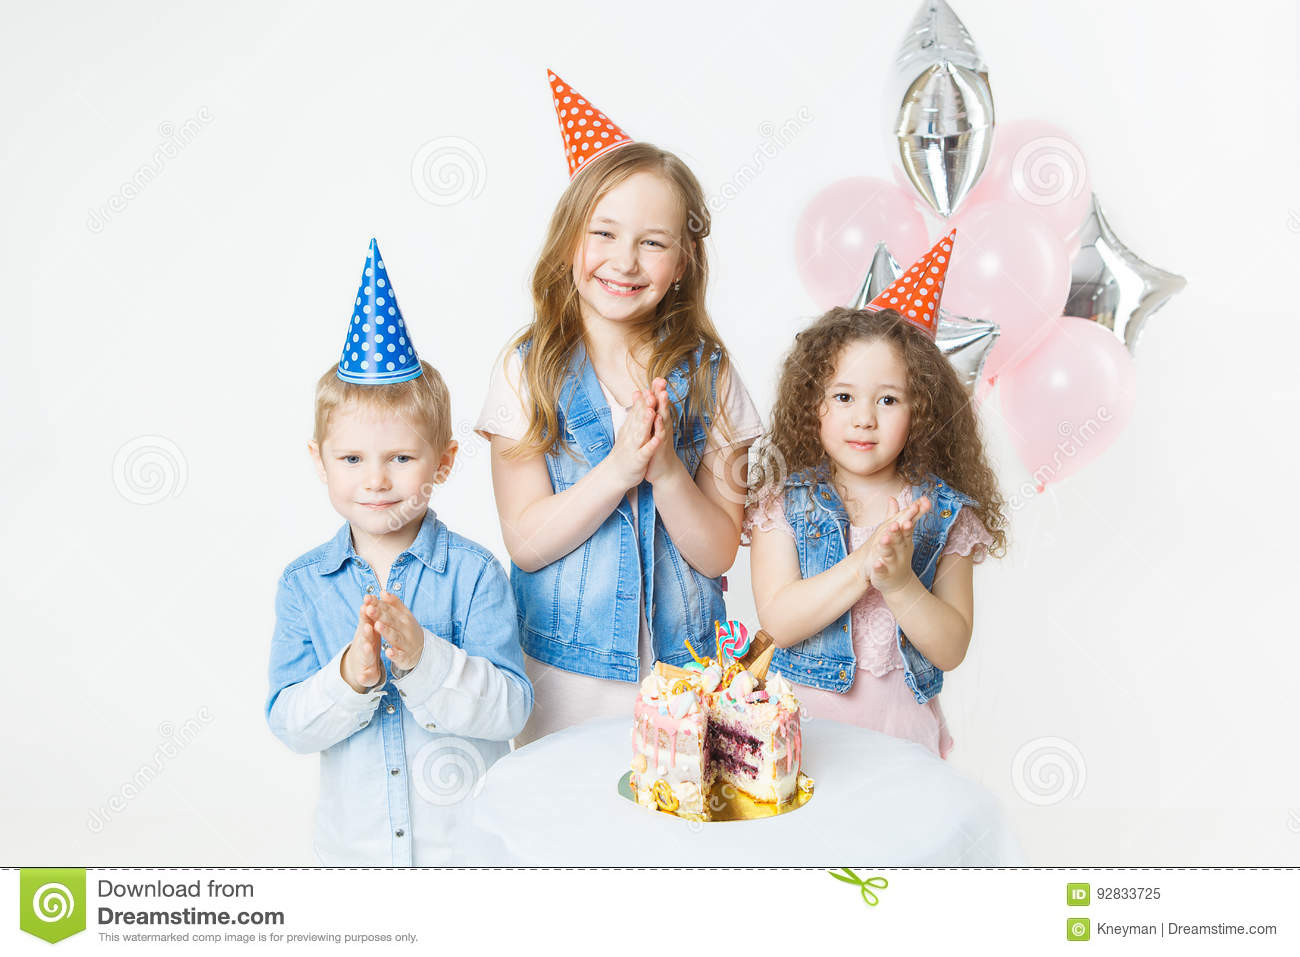 Group of kids in festive caps clap their hands near birthday cake, balloons on background